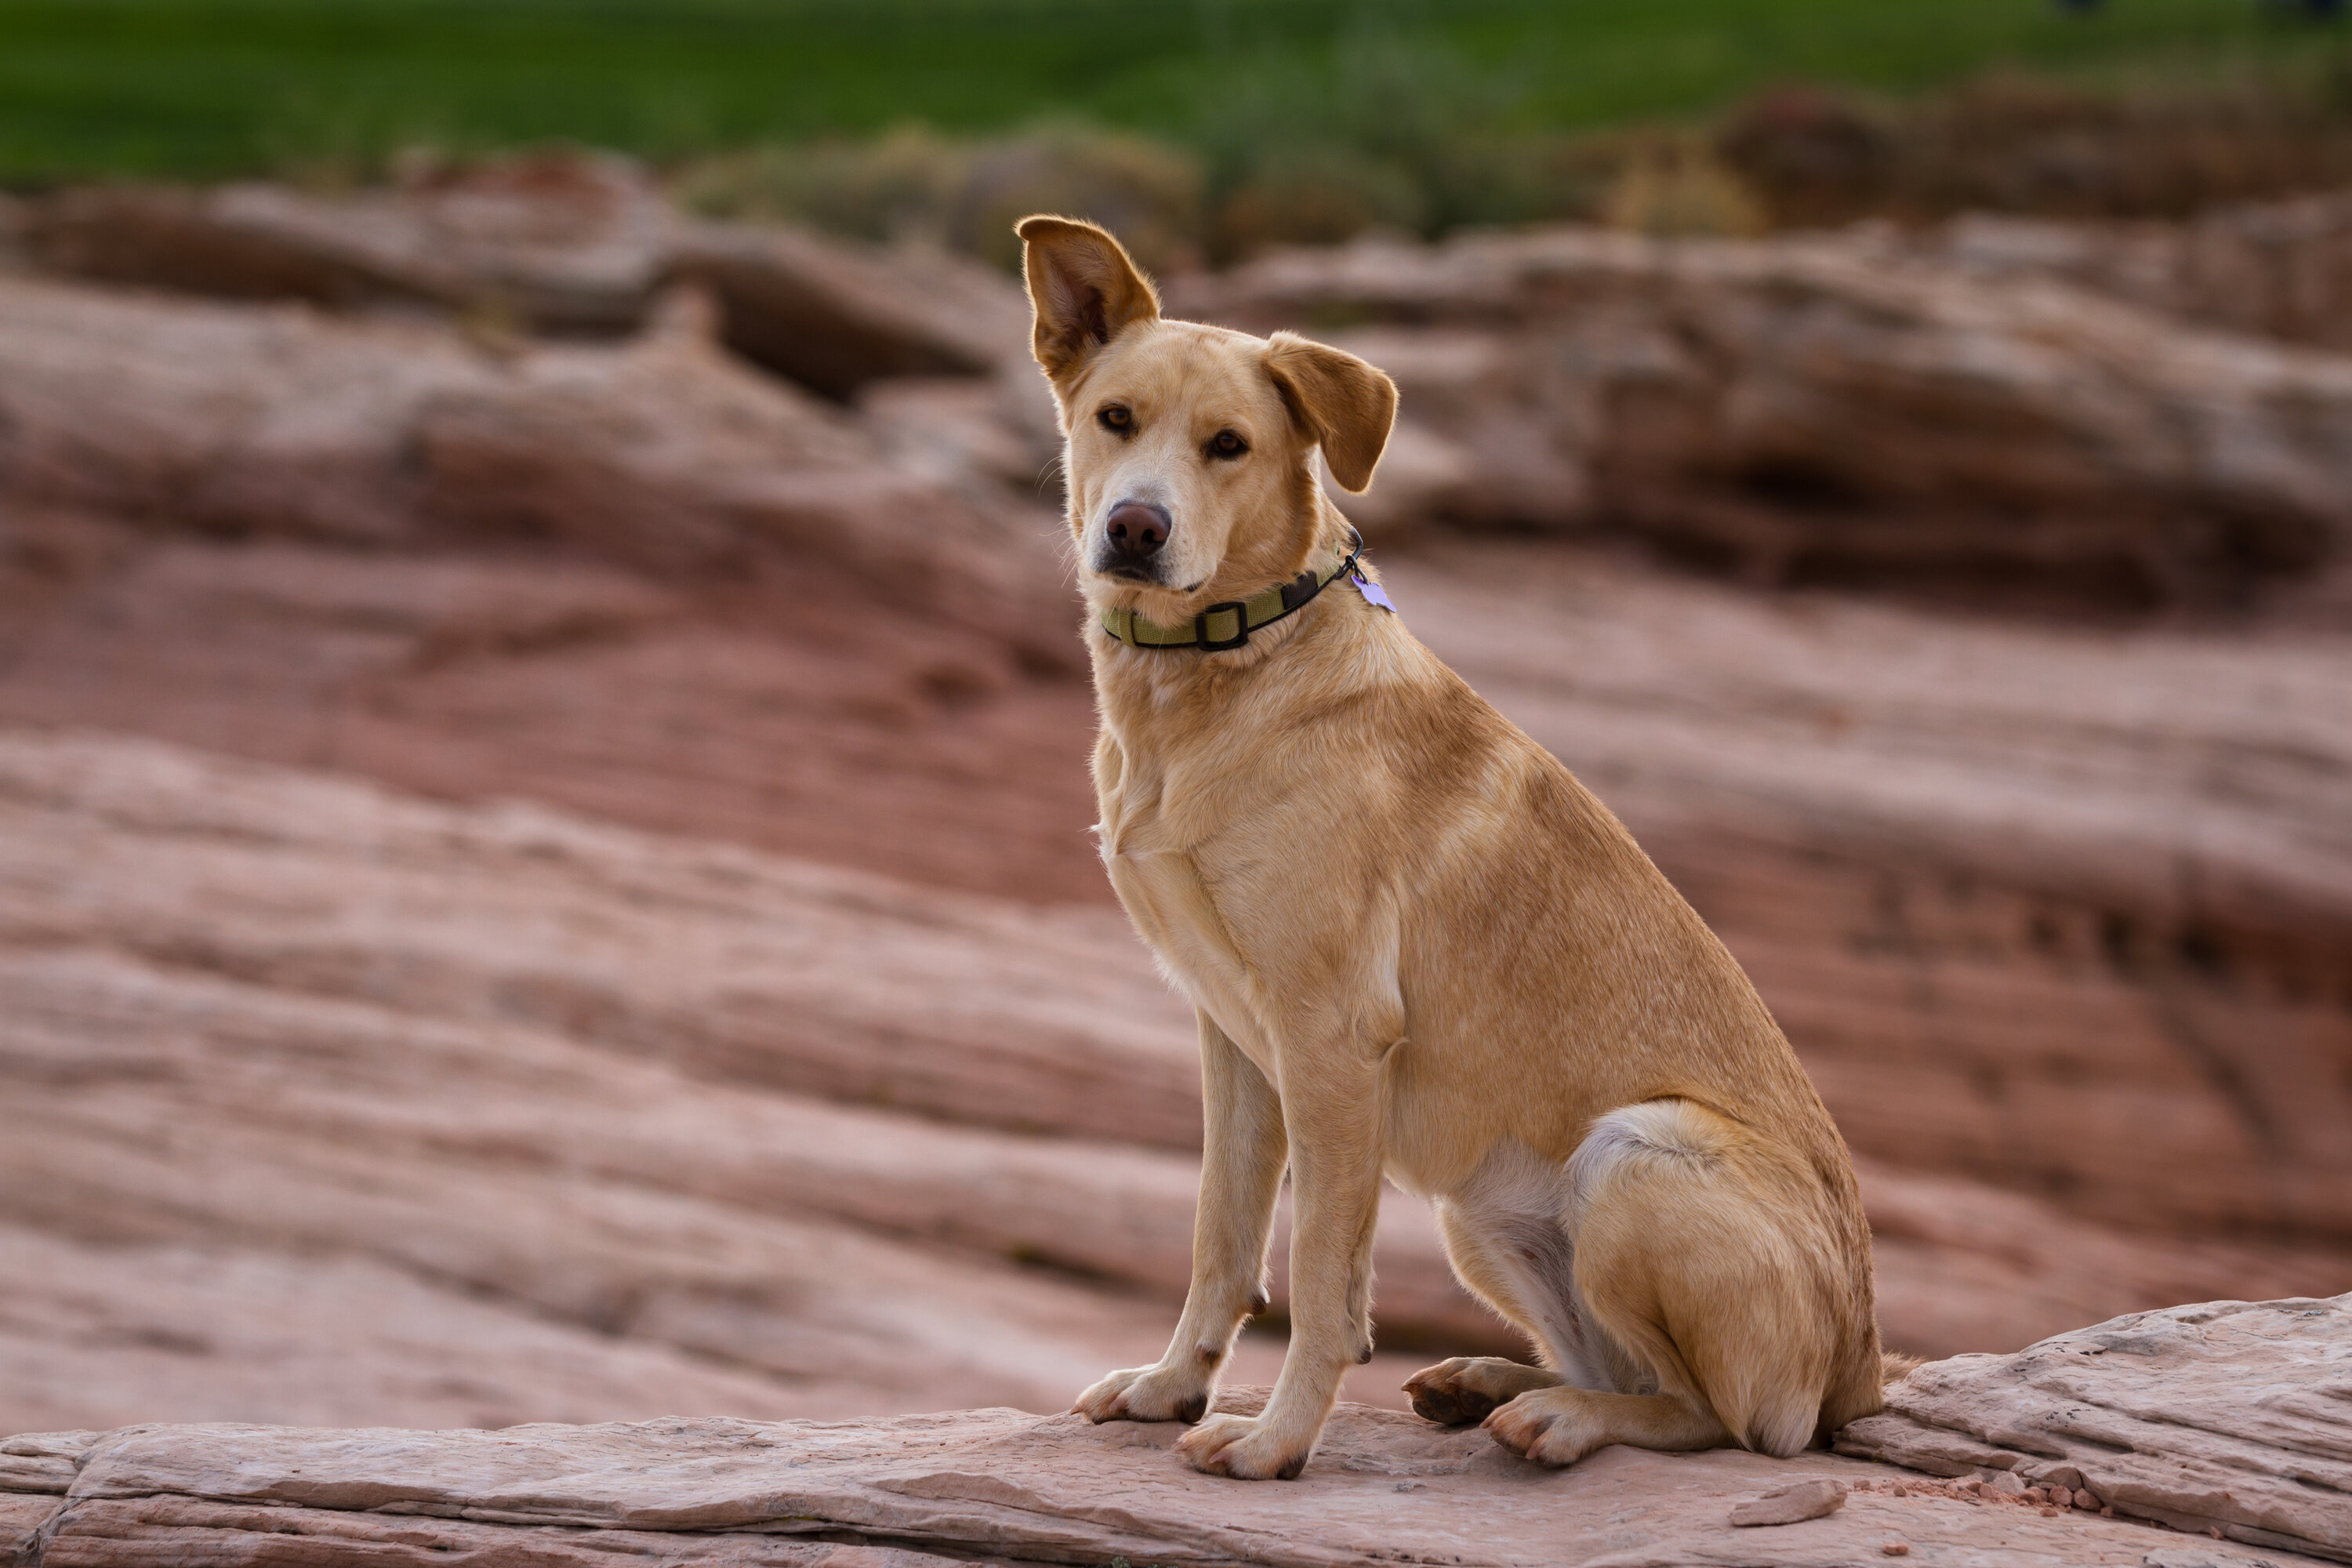 A cute large yellow/tan dog sitting on red rocks in the desert, looking at the camera with one ear up, and a dog collar on